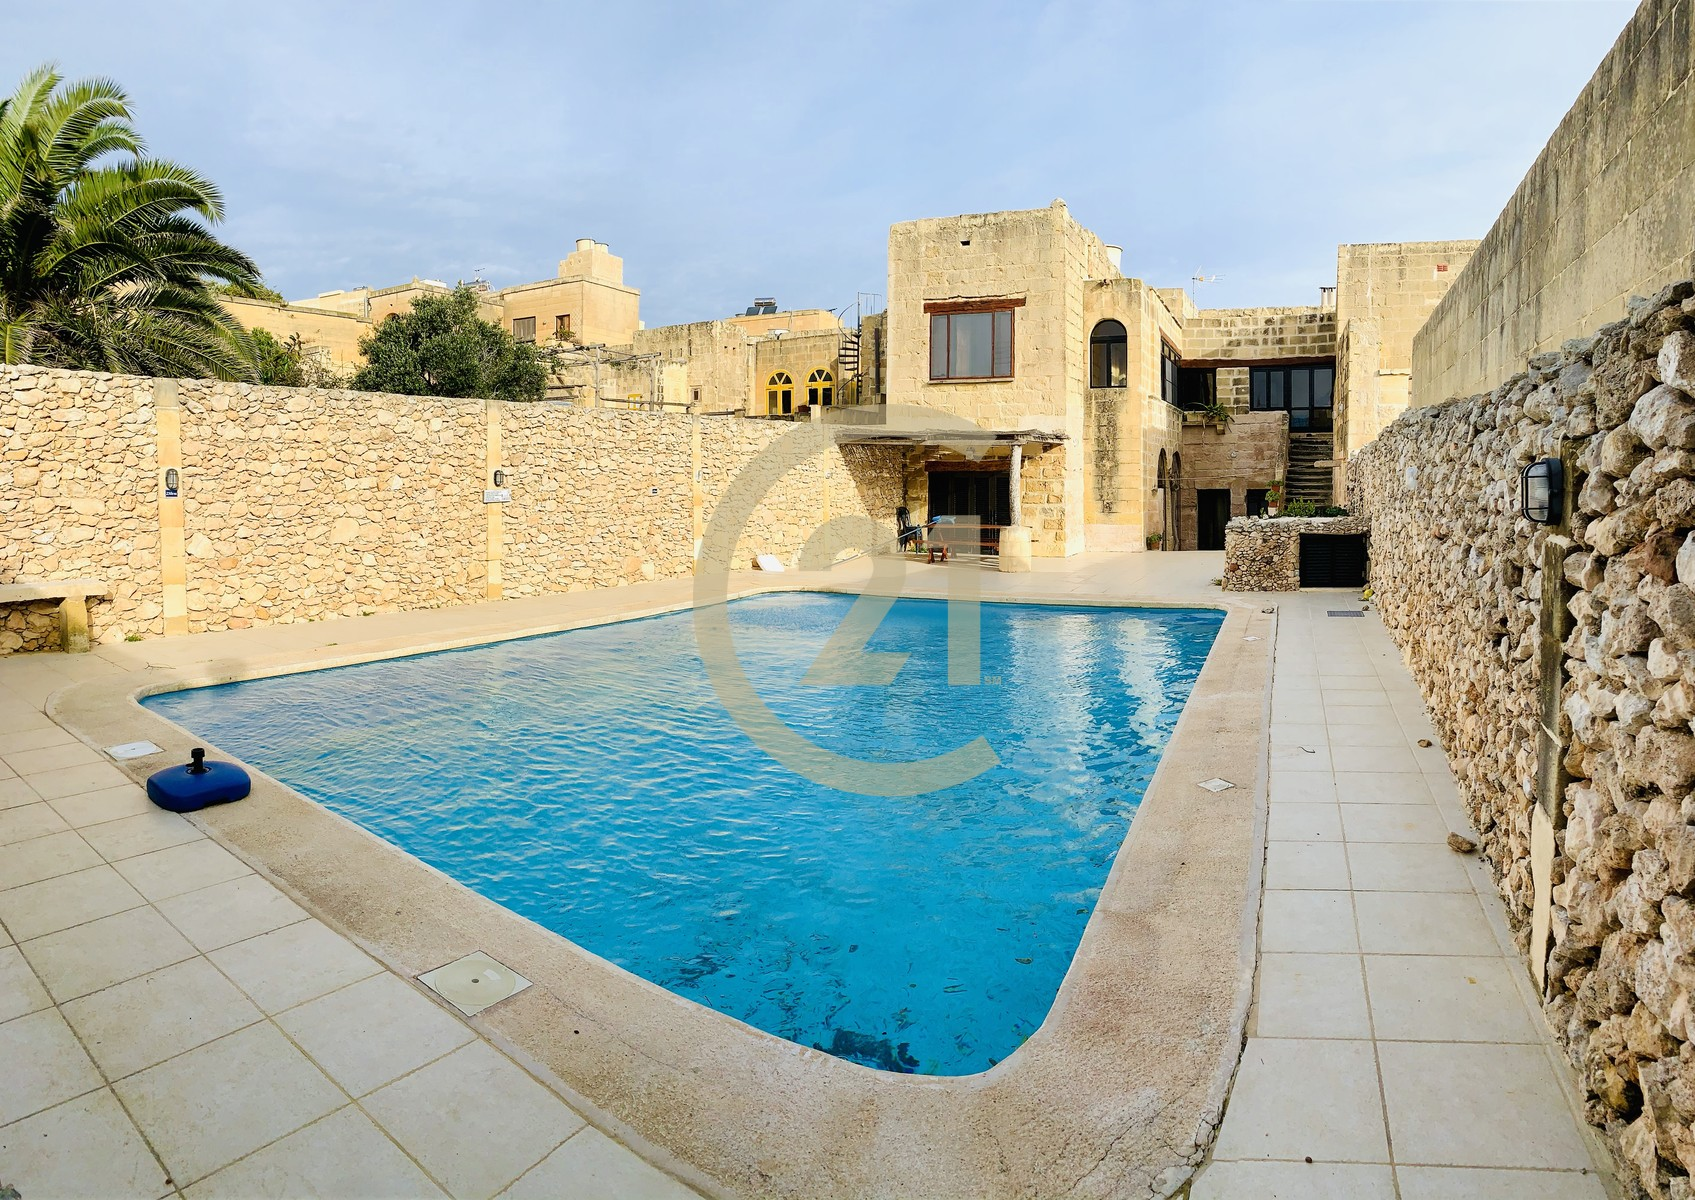 Authentic Farmhouse For Sale in Gharb